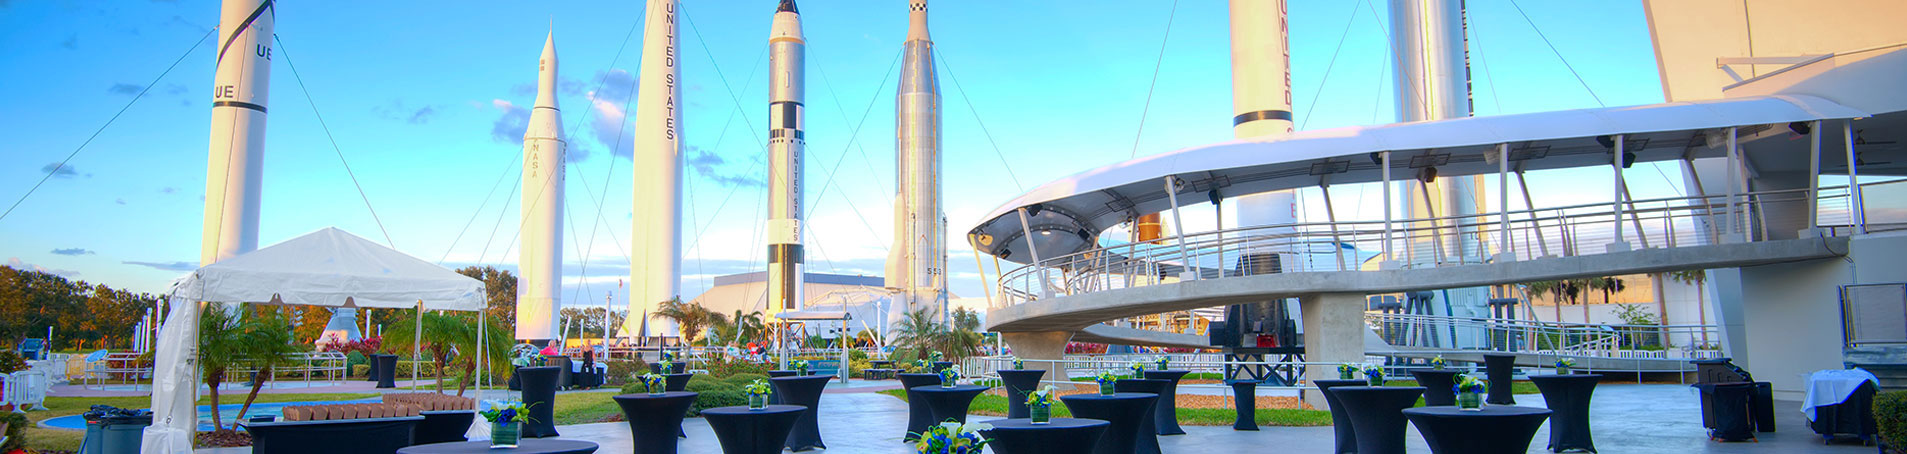 Enjoy an unique event experience at the Debus Conference Facility, with a stunning view of the Rocket Garden.